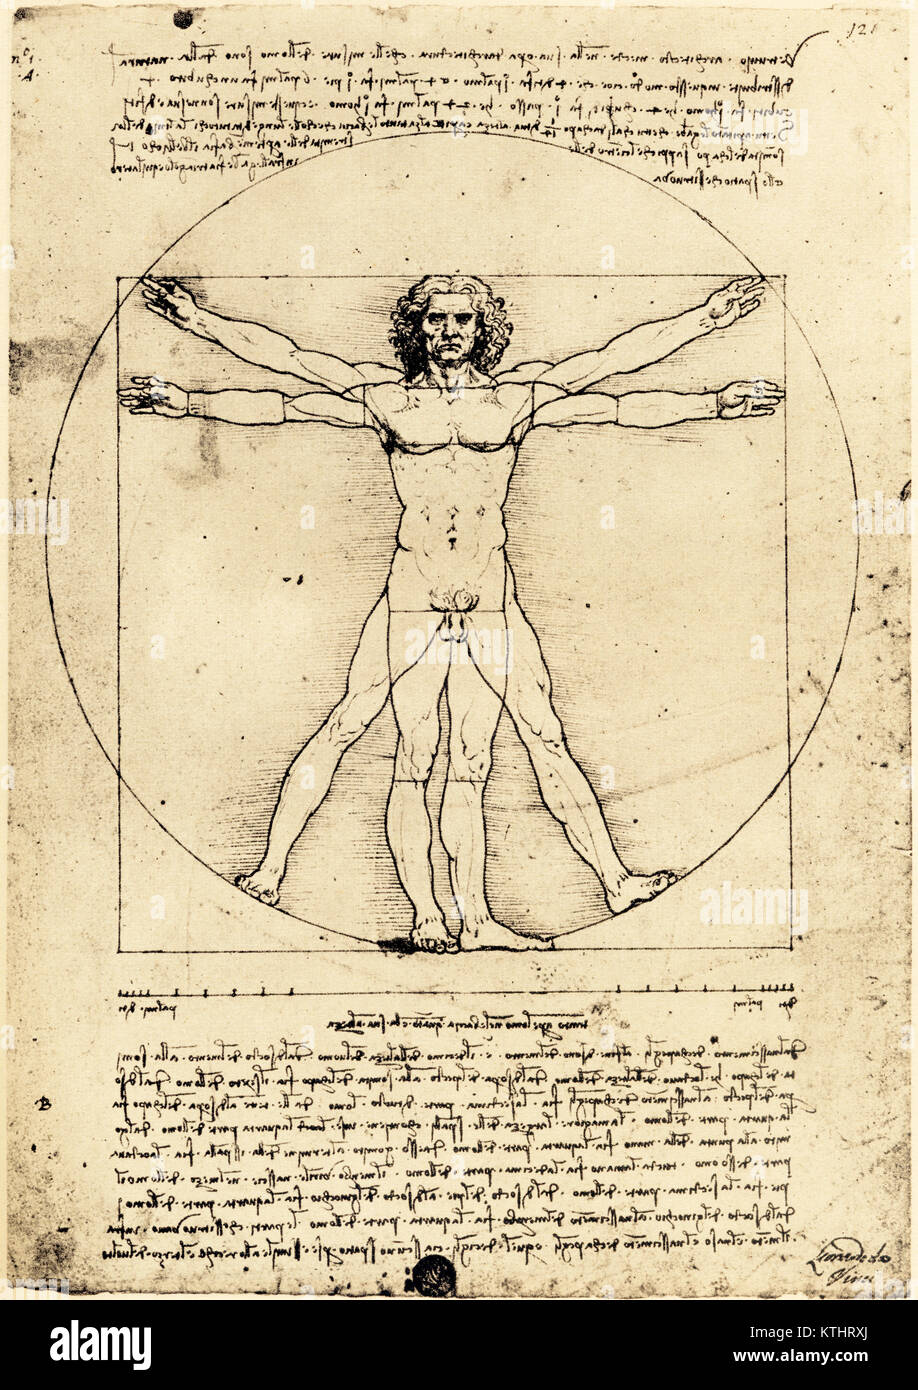 Vetruvian Man, by Leonardo da Vinci created c. 1480-1490. The drawing, demonstrating proportions of the human body, - Stock Image